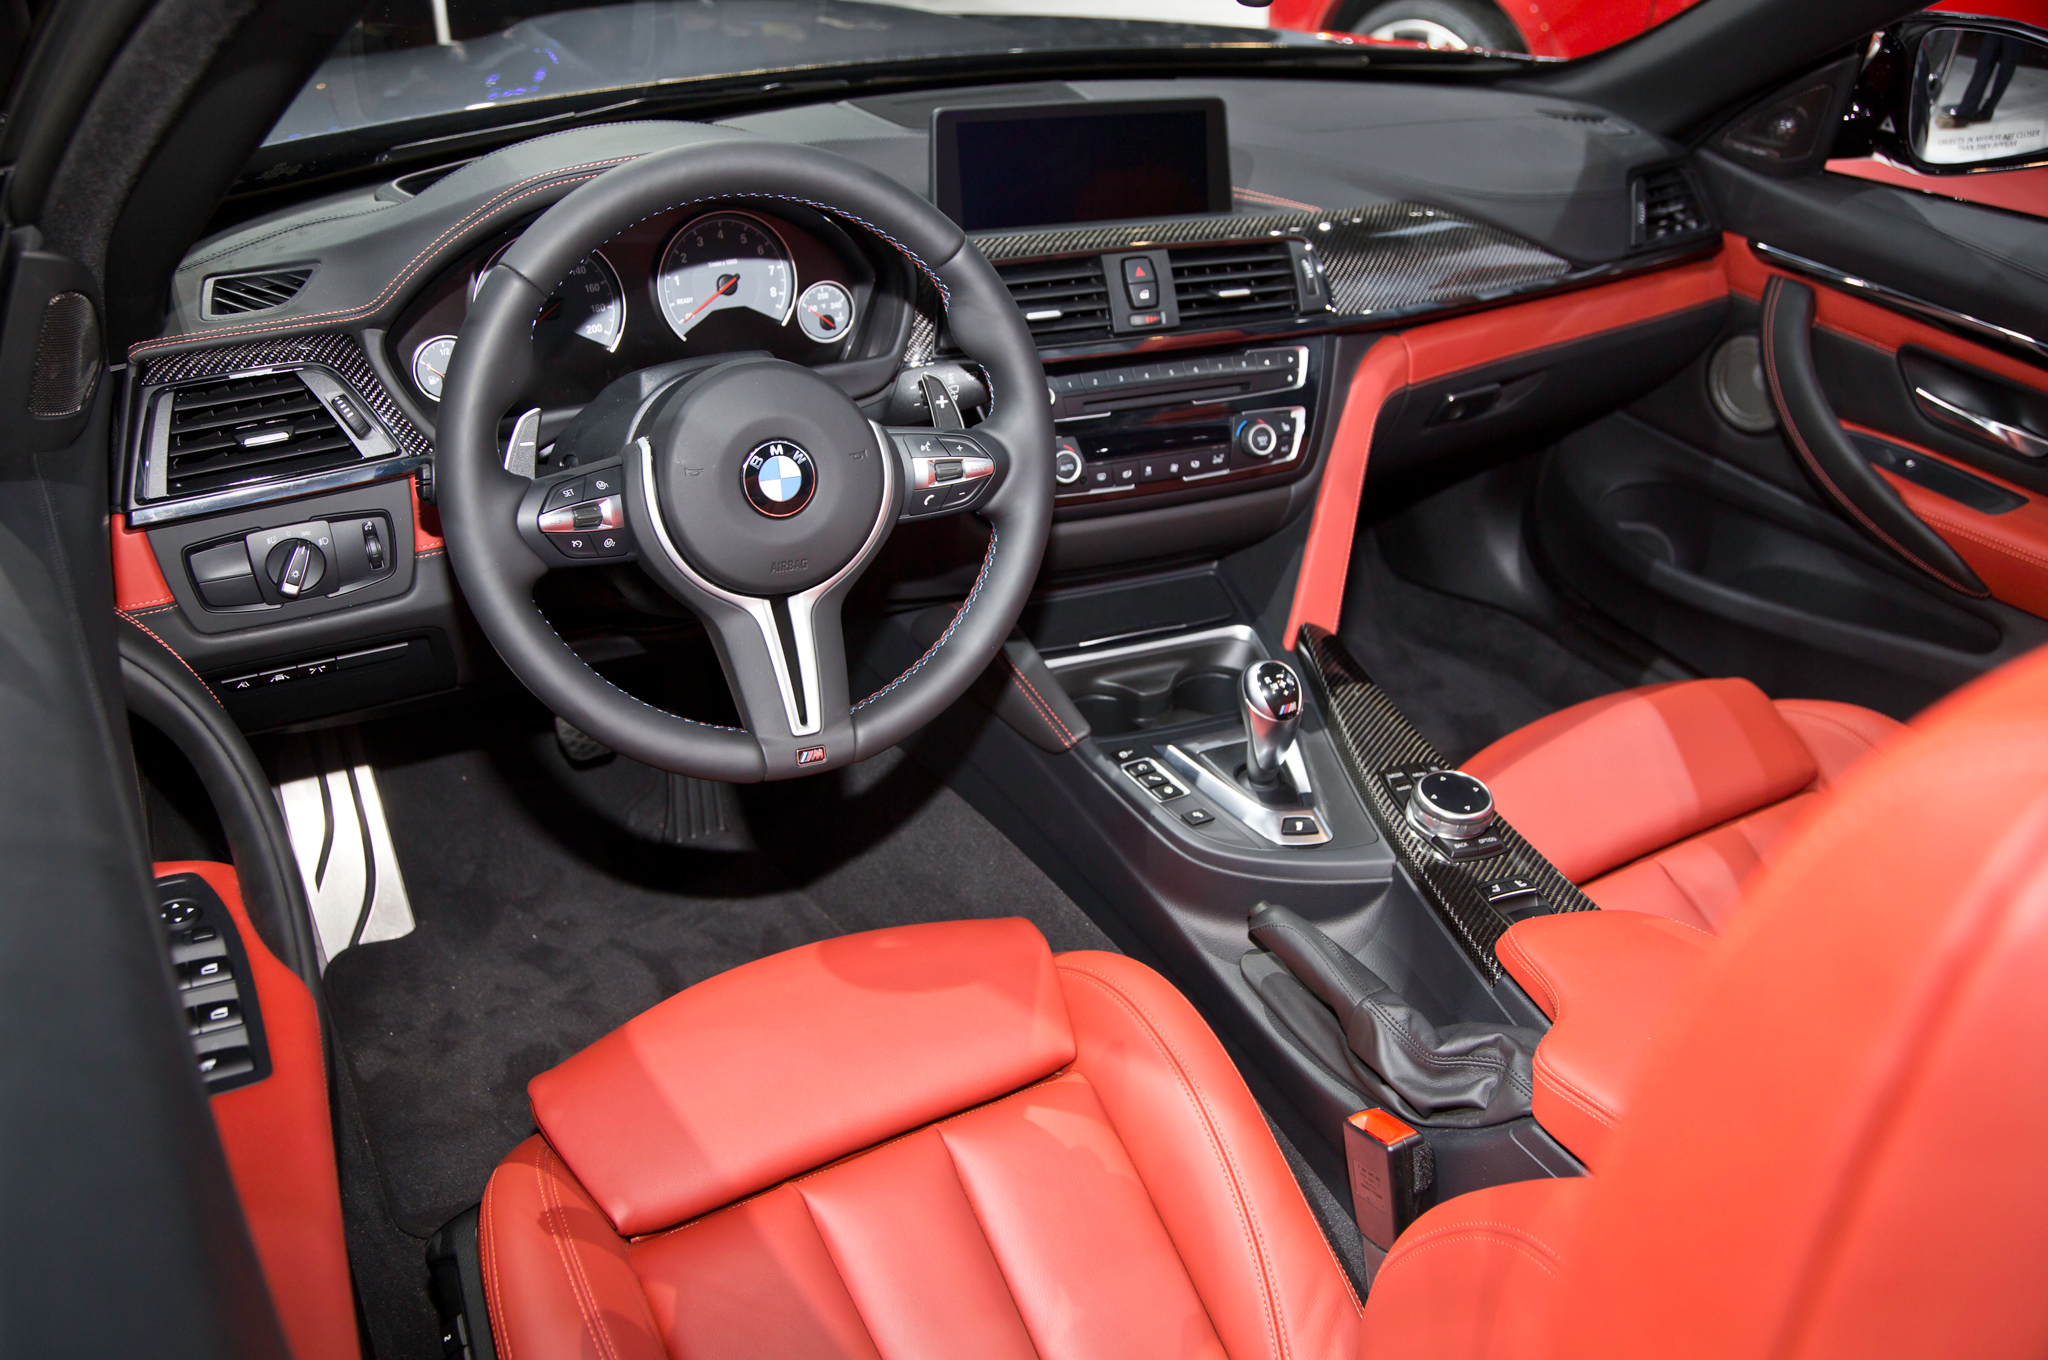 2015 Bmw M4 Convertible Dashboard And Cockpit (View 8 of 50)